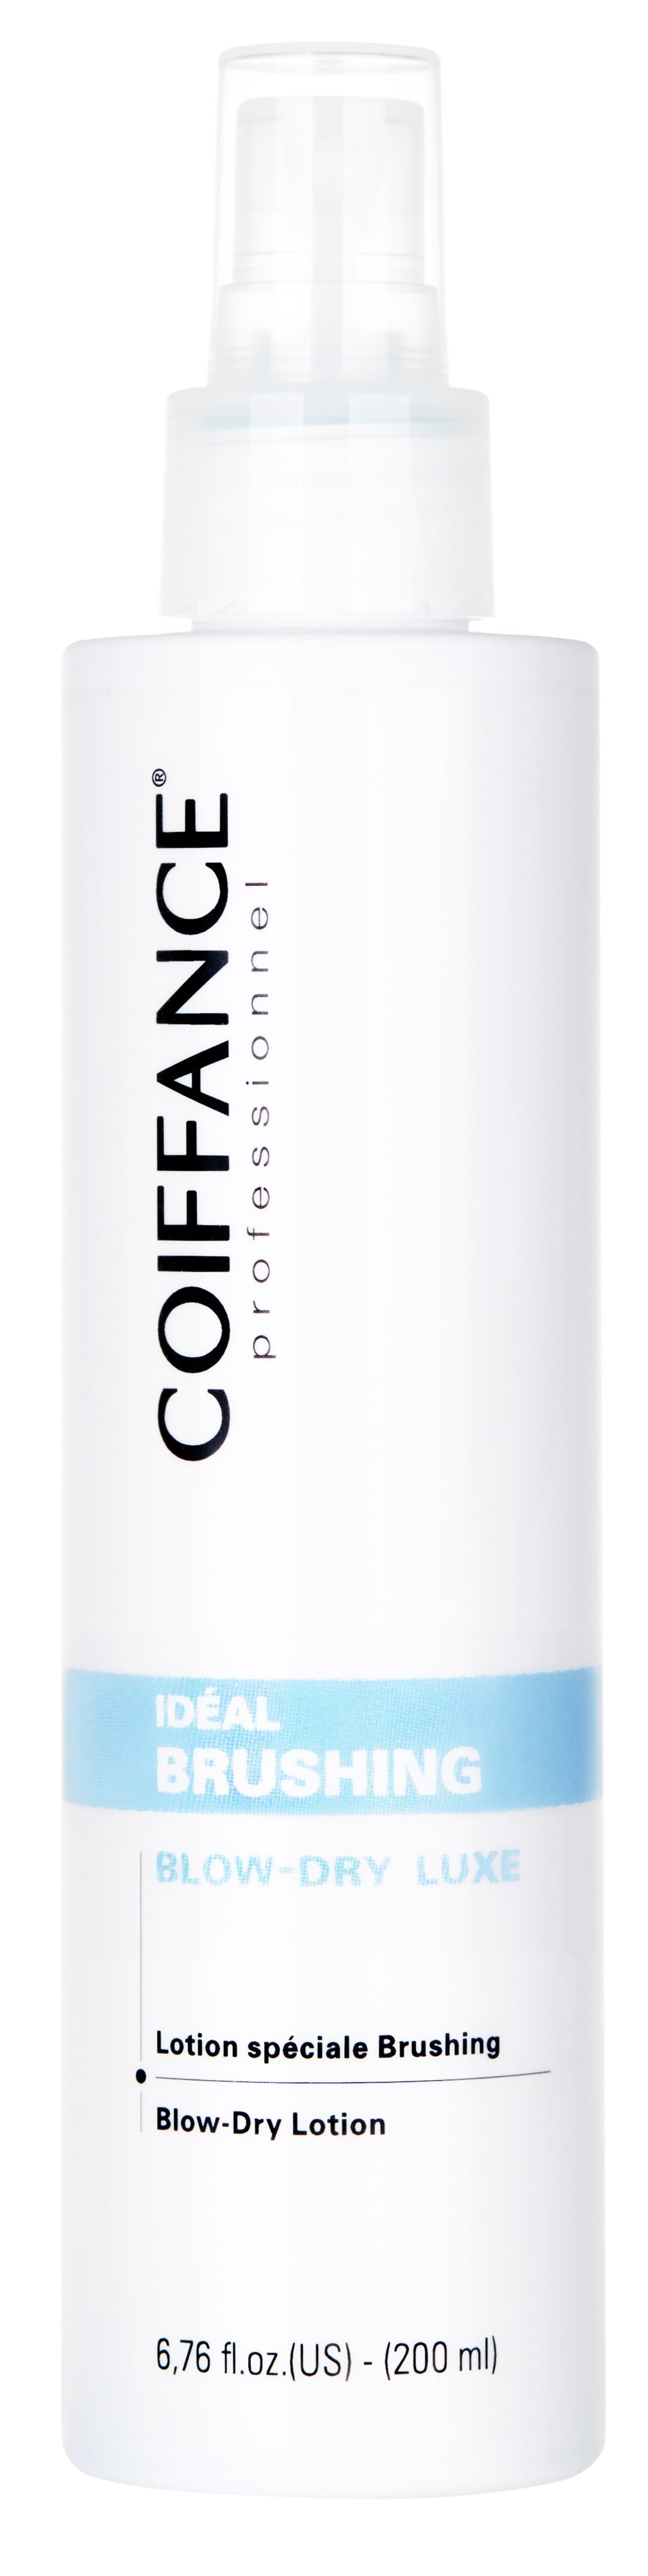 Coiffance Technic - blow dry luxe lotion - 200ML